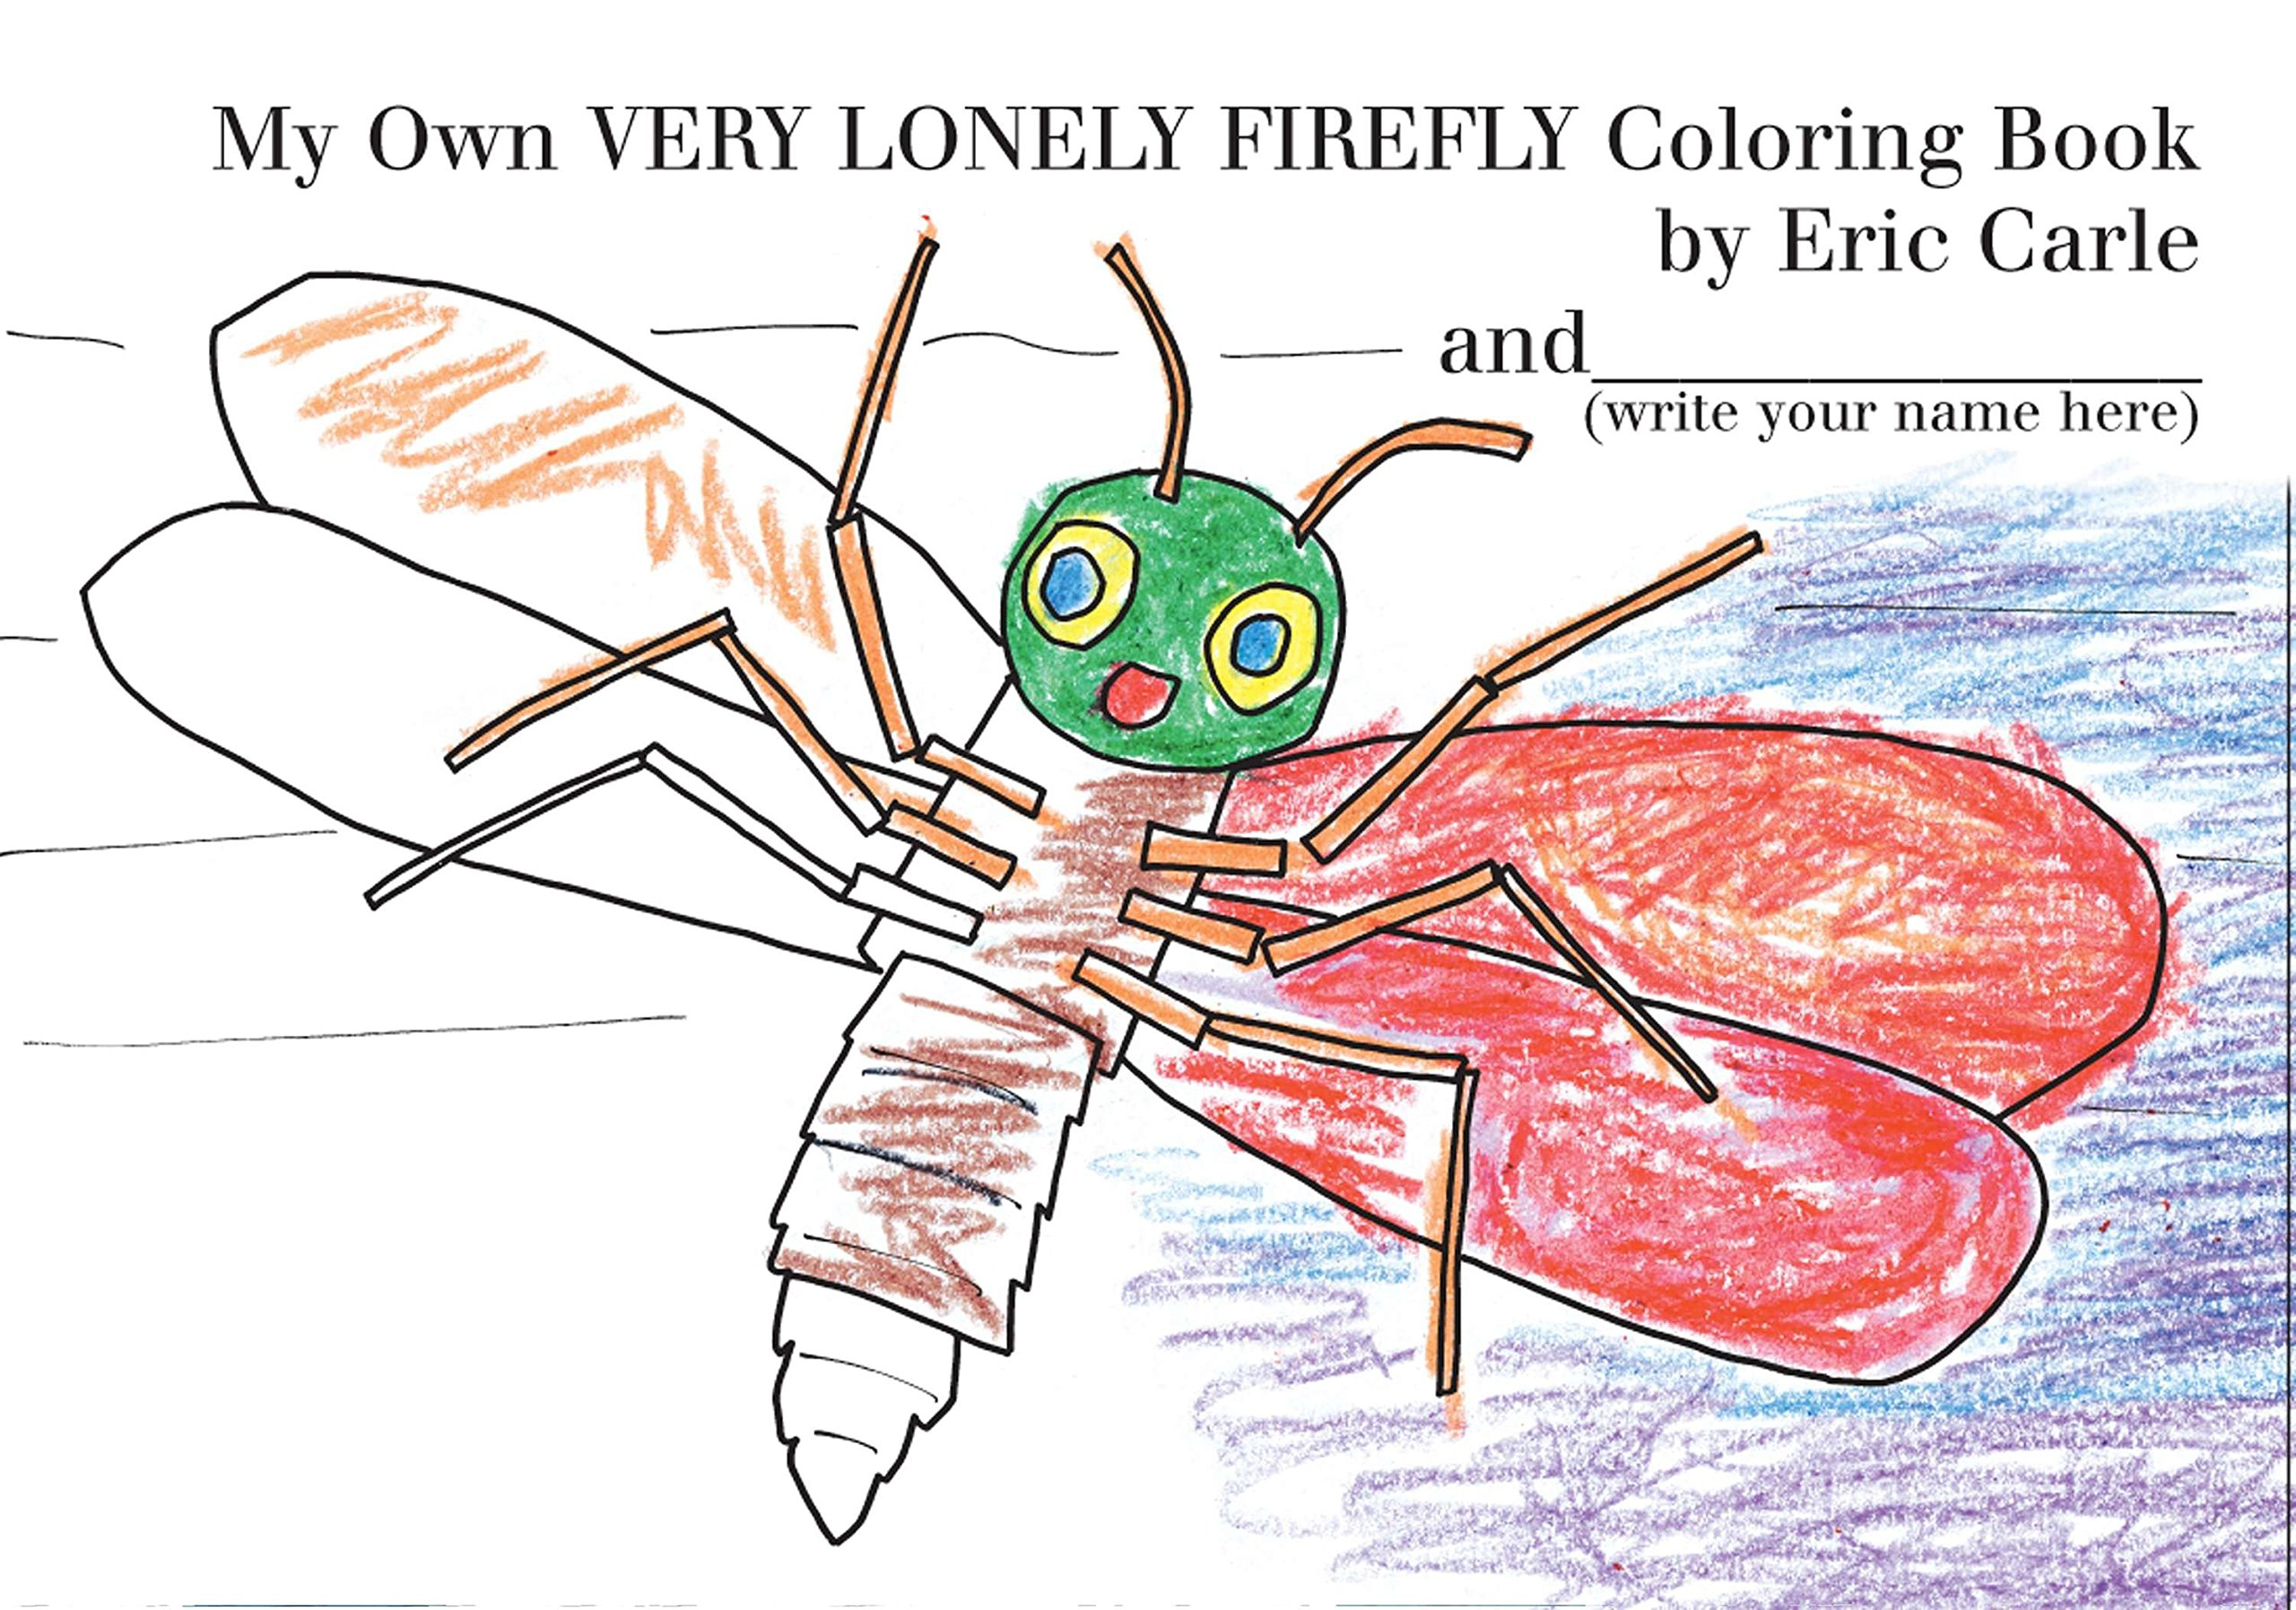 My Own Very Lonely Firefly Coloring Book Eric Carle